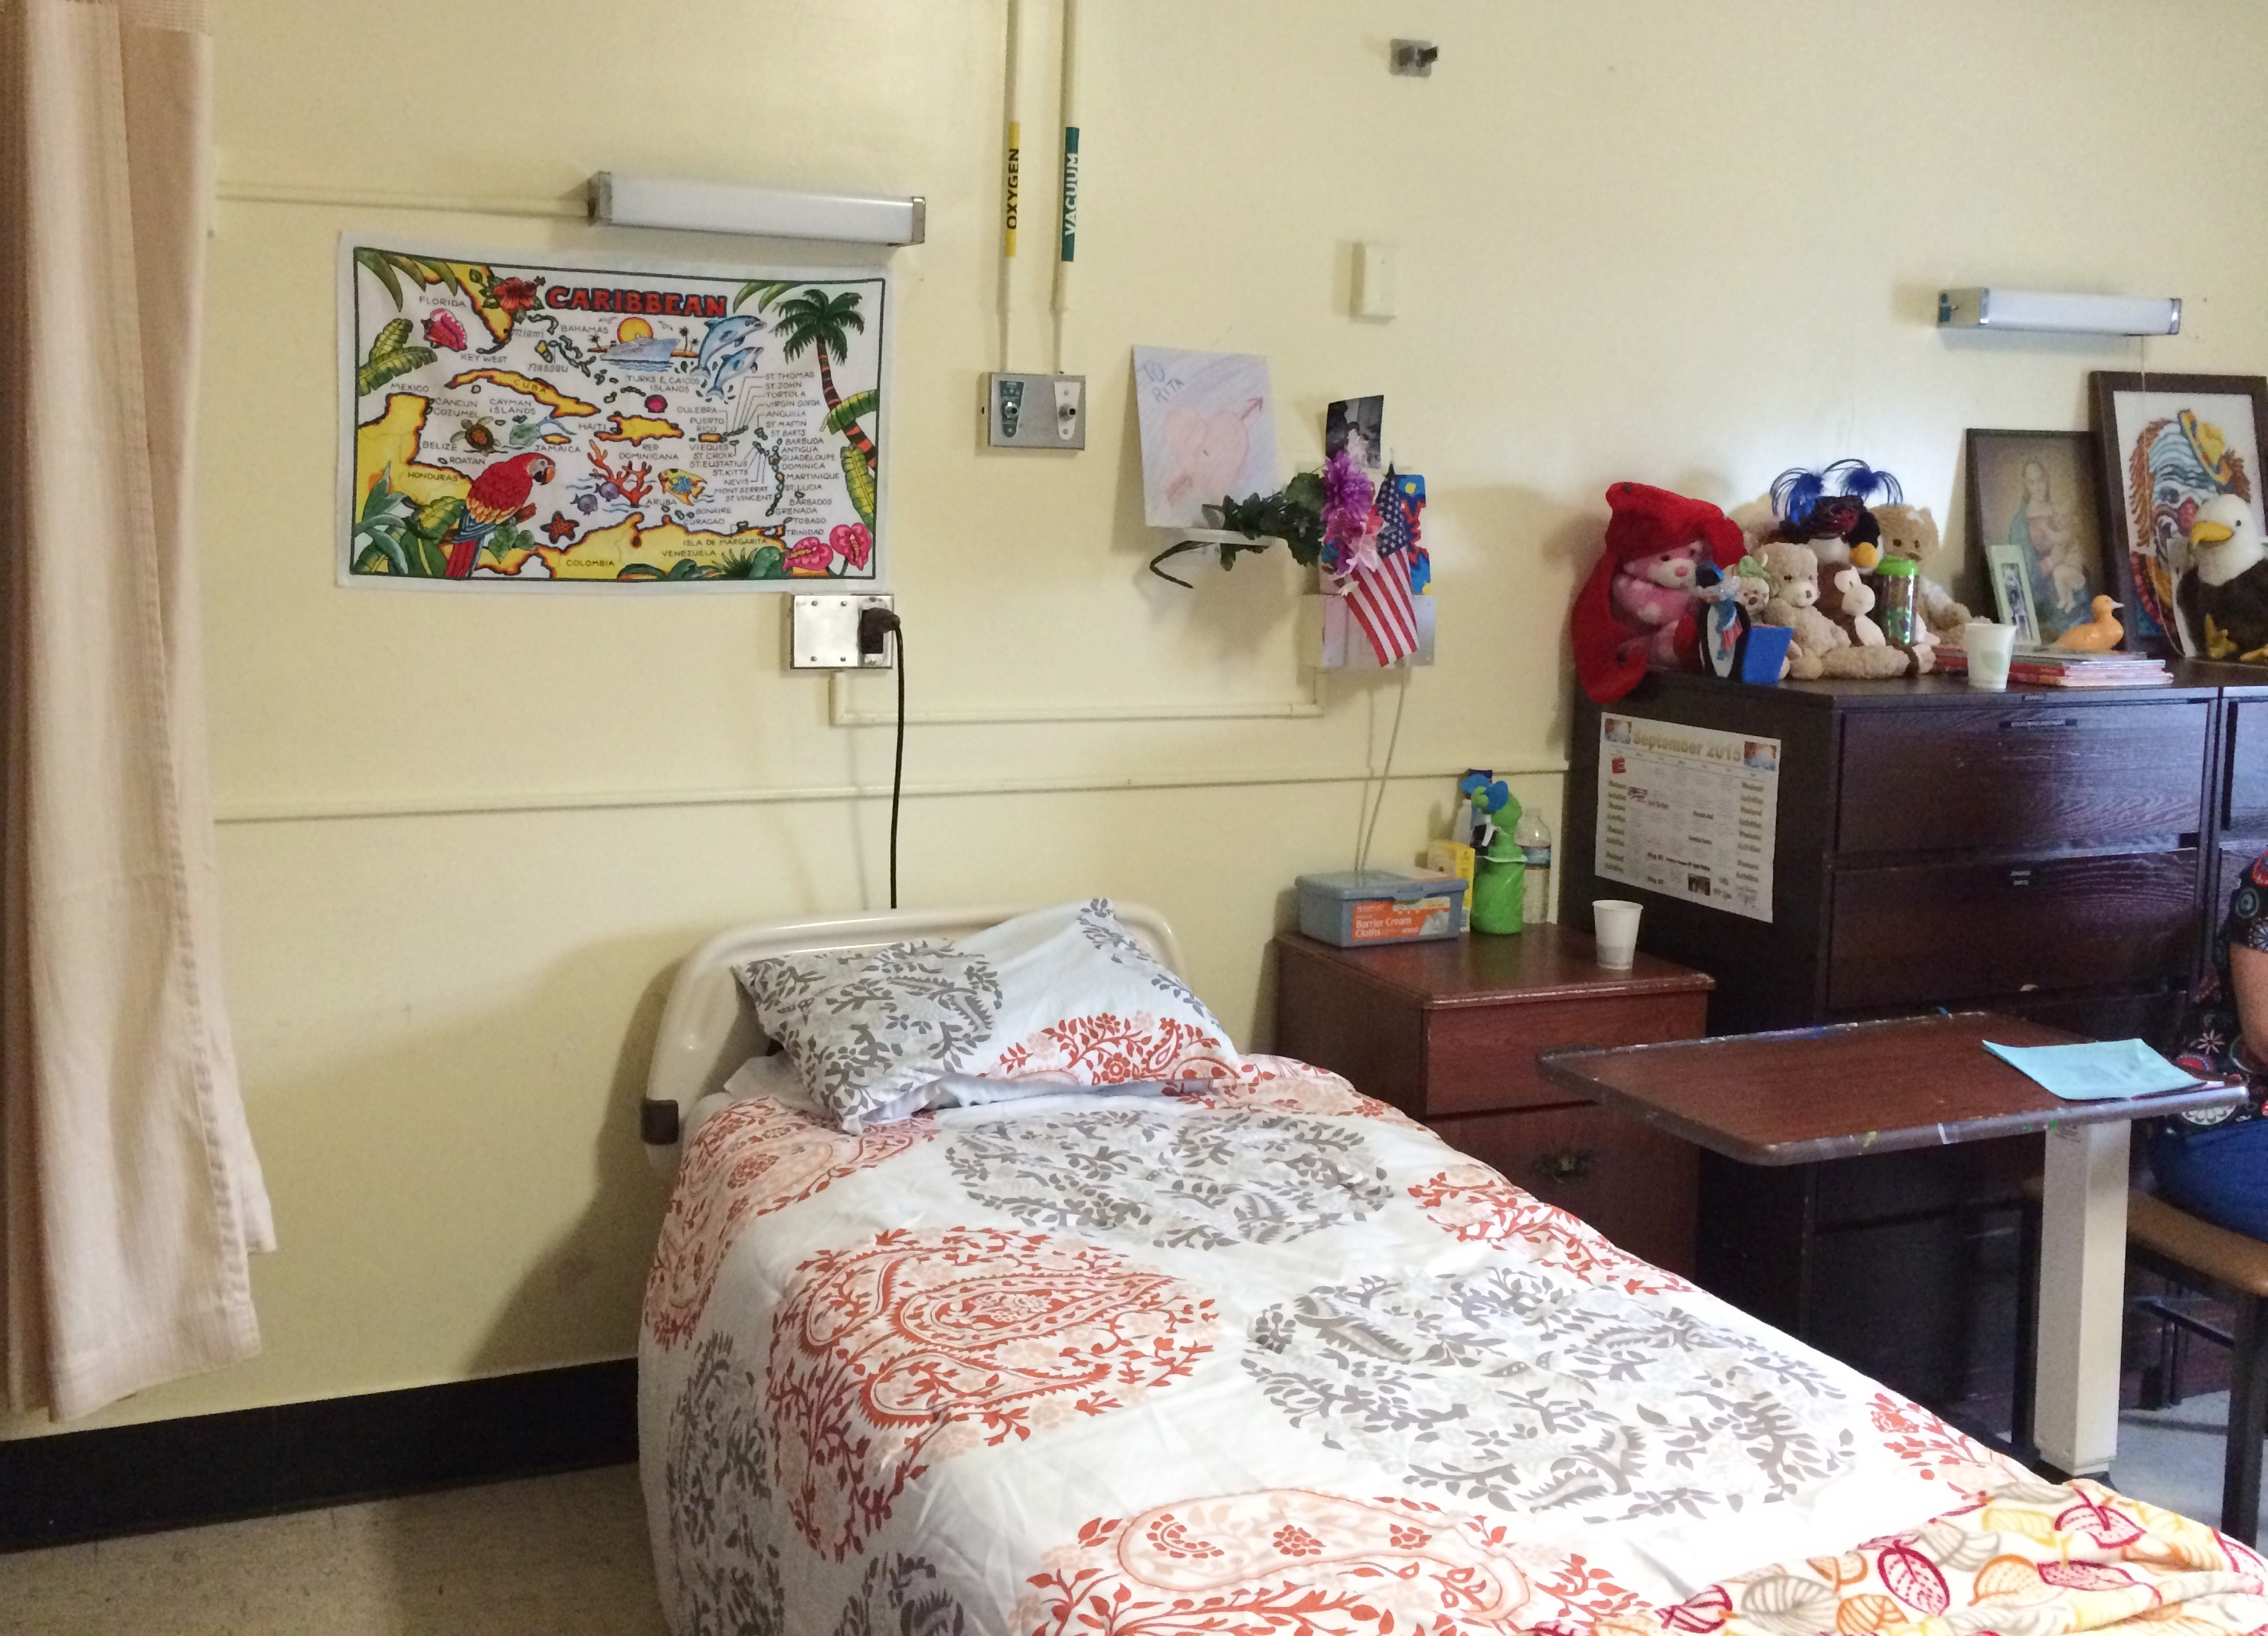 Patients sleep several to a room on this second floor unit.